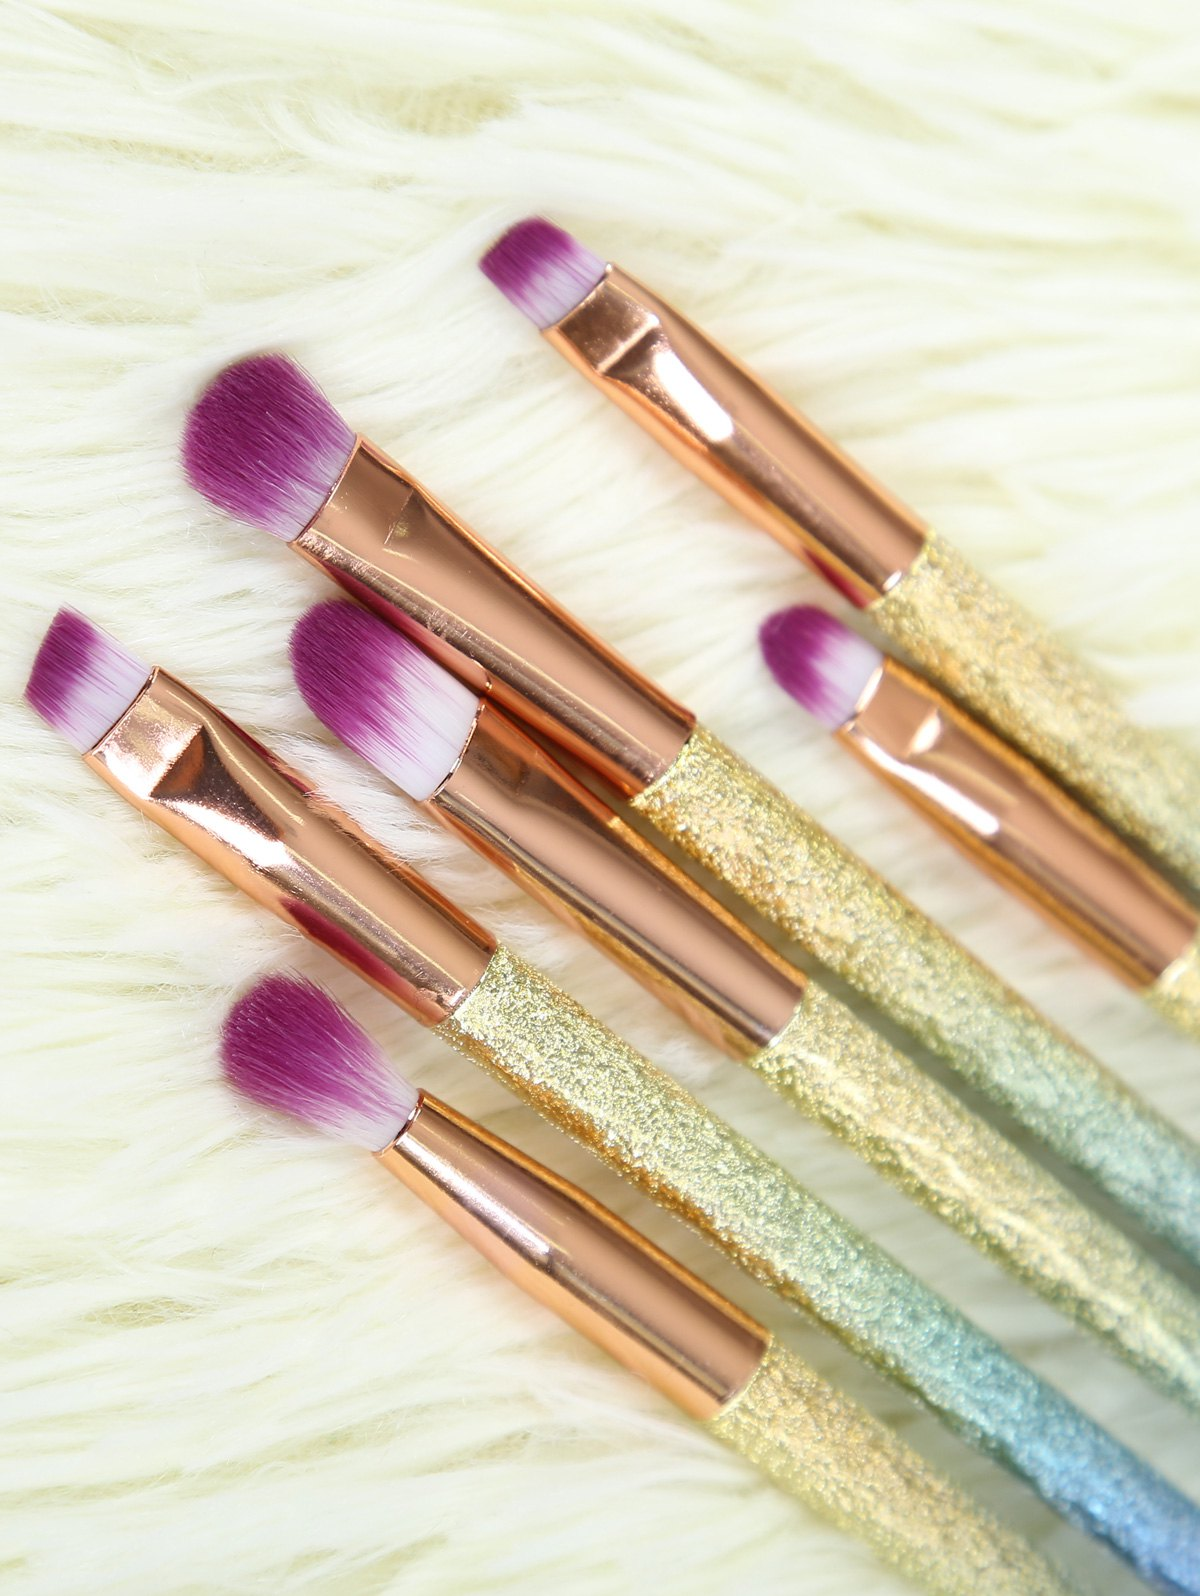 Ombre Glitter Eye Makeup Brushes SetBEAUTY<br><br>Color: ROSE GOLD; Category: Makeup Brushes Set; Brush Hair Material: Synthetic Hair; Features: Professional; Season: Fall,Spring,Summer,Winter; Weight: 0.158kg; Package Contents: 6 x Brushes (Pcs);